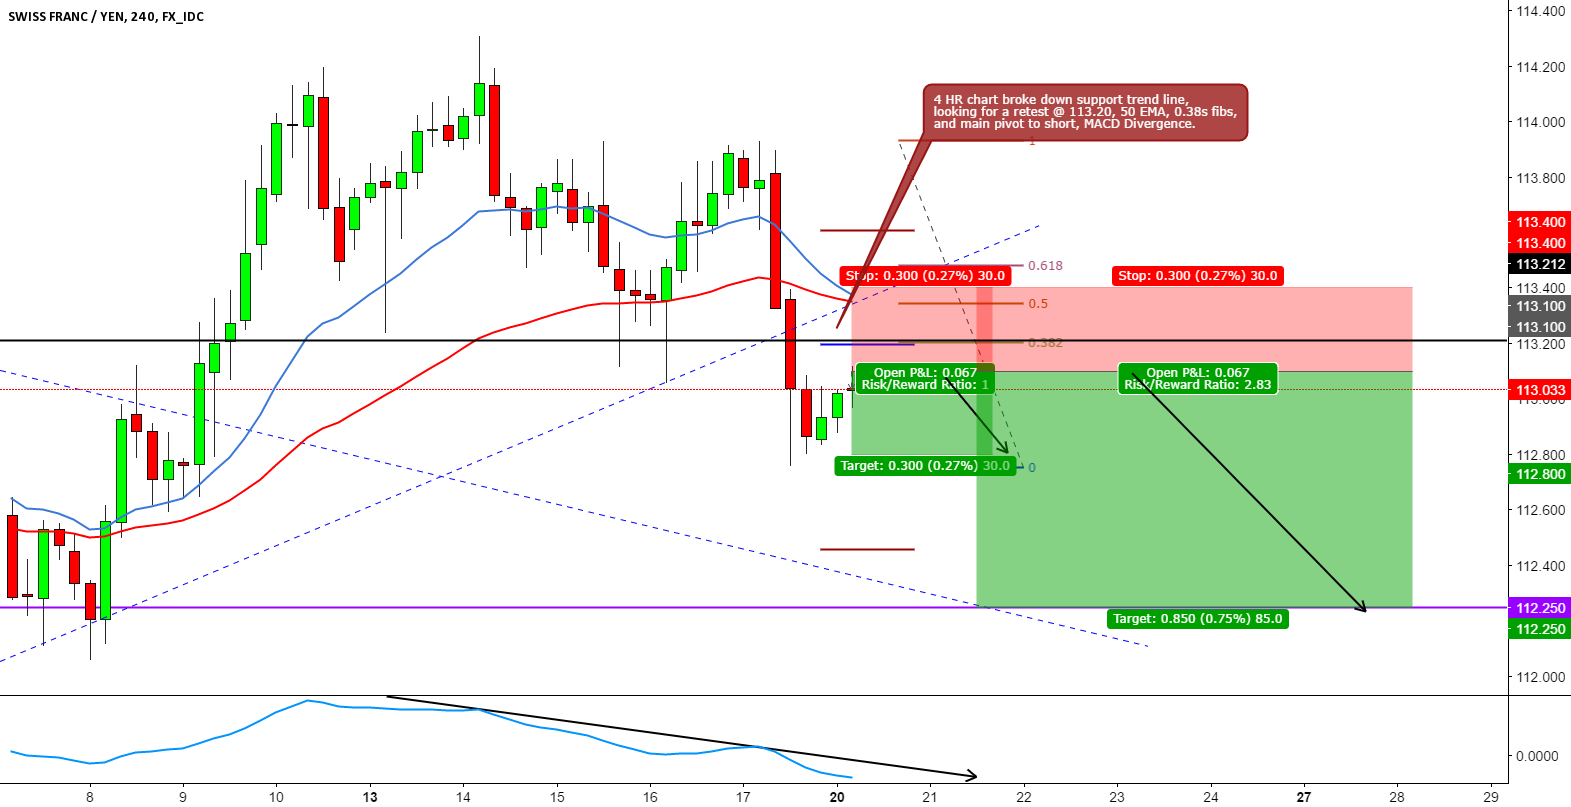 CHFJPY SHORT 4 HR BREAK AND RETEST TRADE SETUP